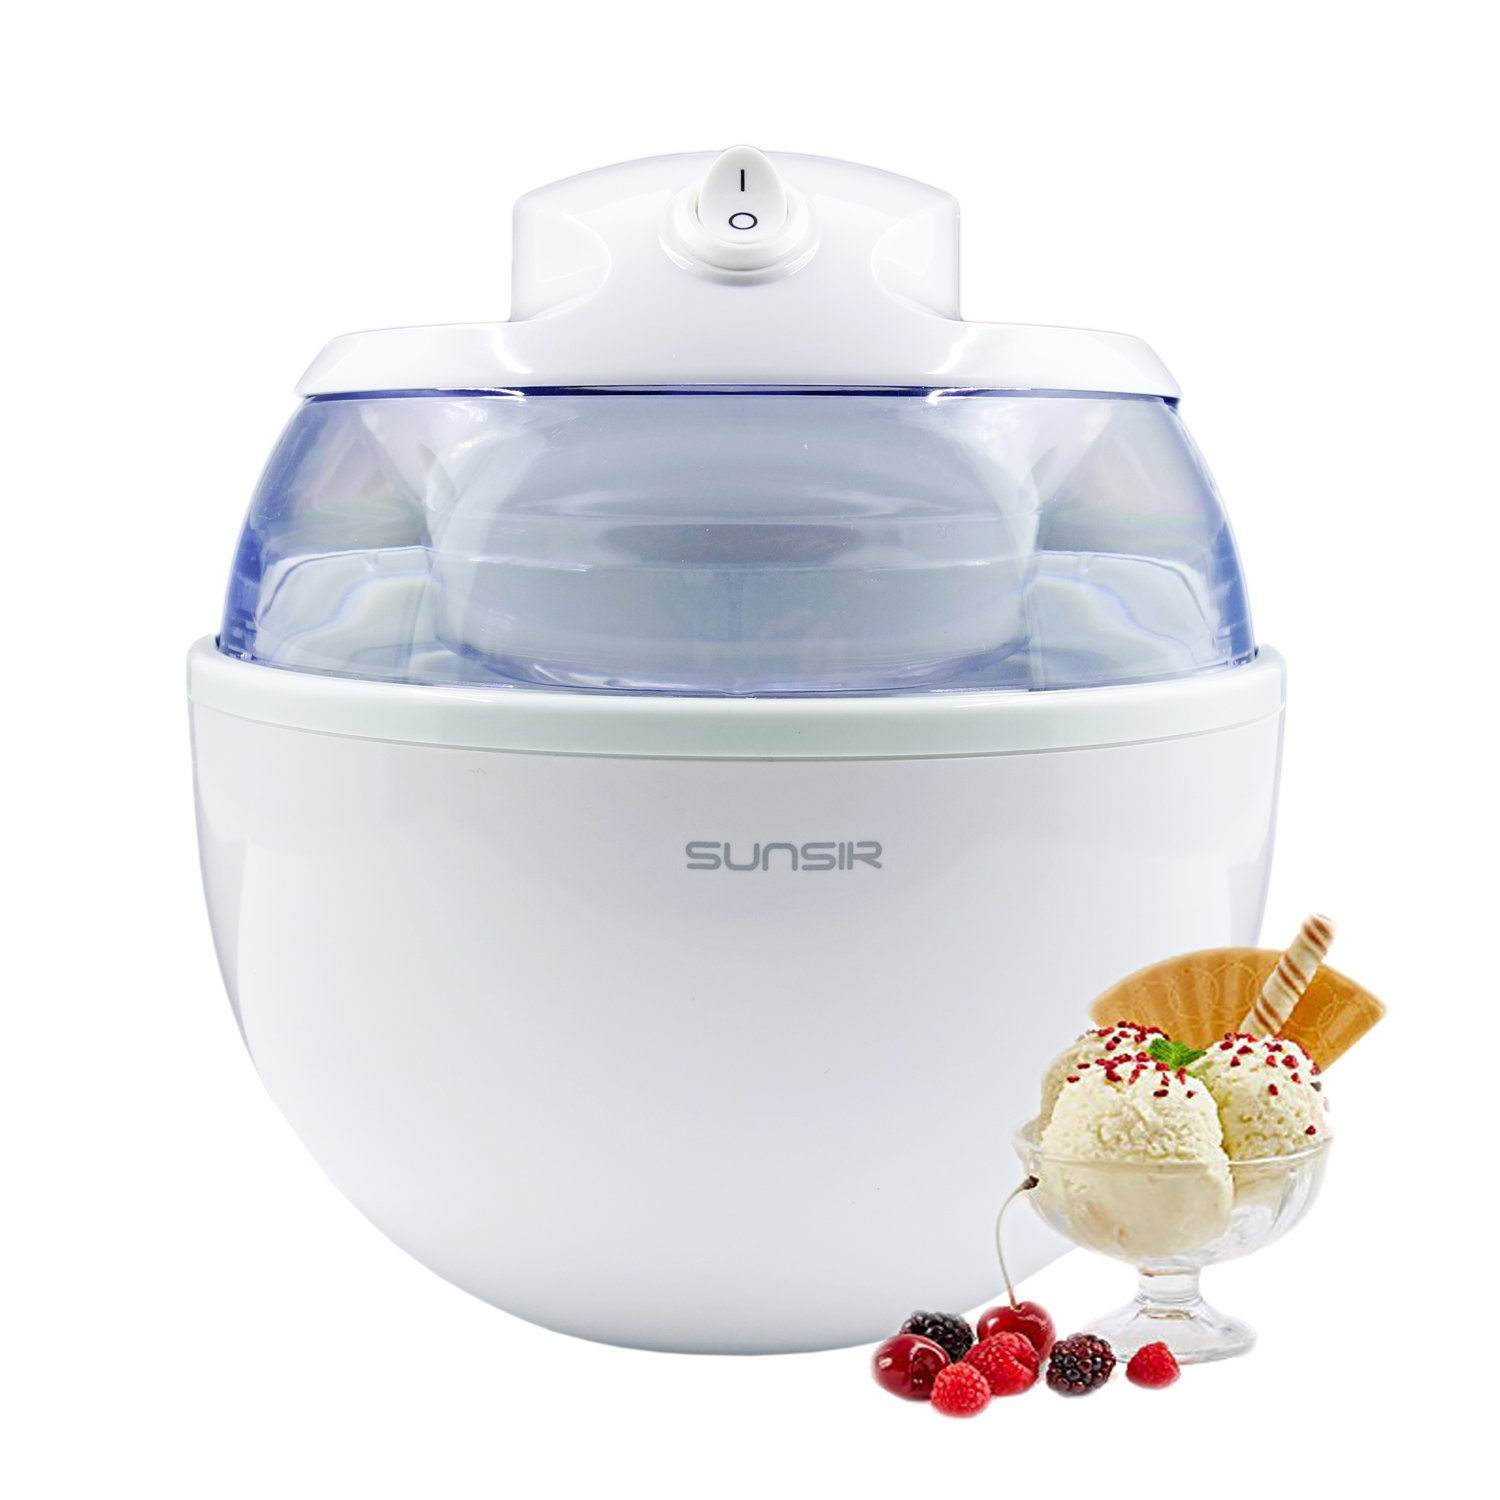 Sunsir Home Mini Automatic Ice Cream, Frozen Yogurt and Sorbet Dessert Maker Machine for DIY Fun, Customize Your Own Flavor 3/5-Quart/ 0.6L, White